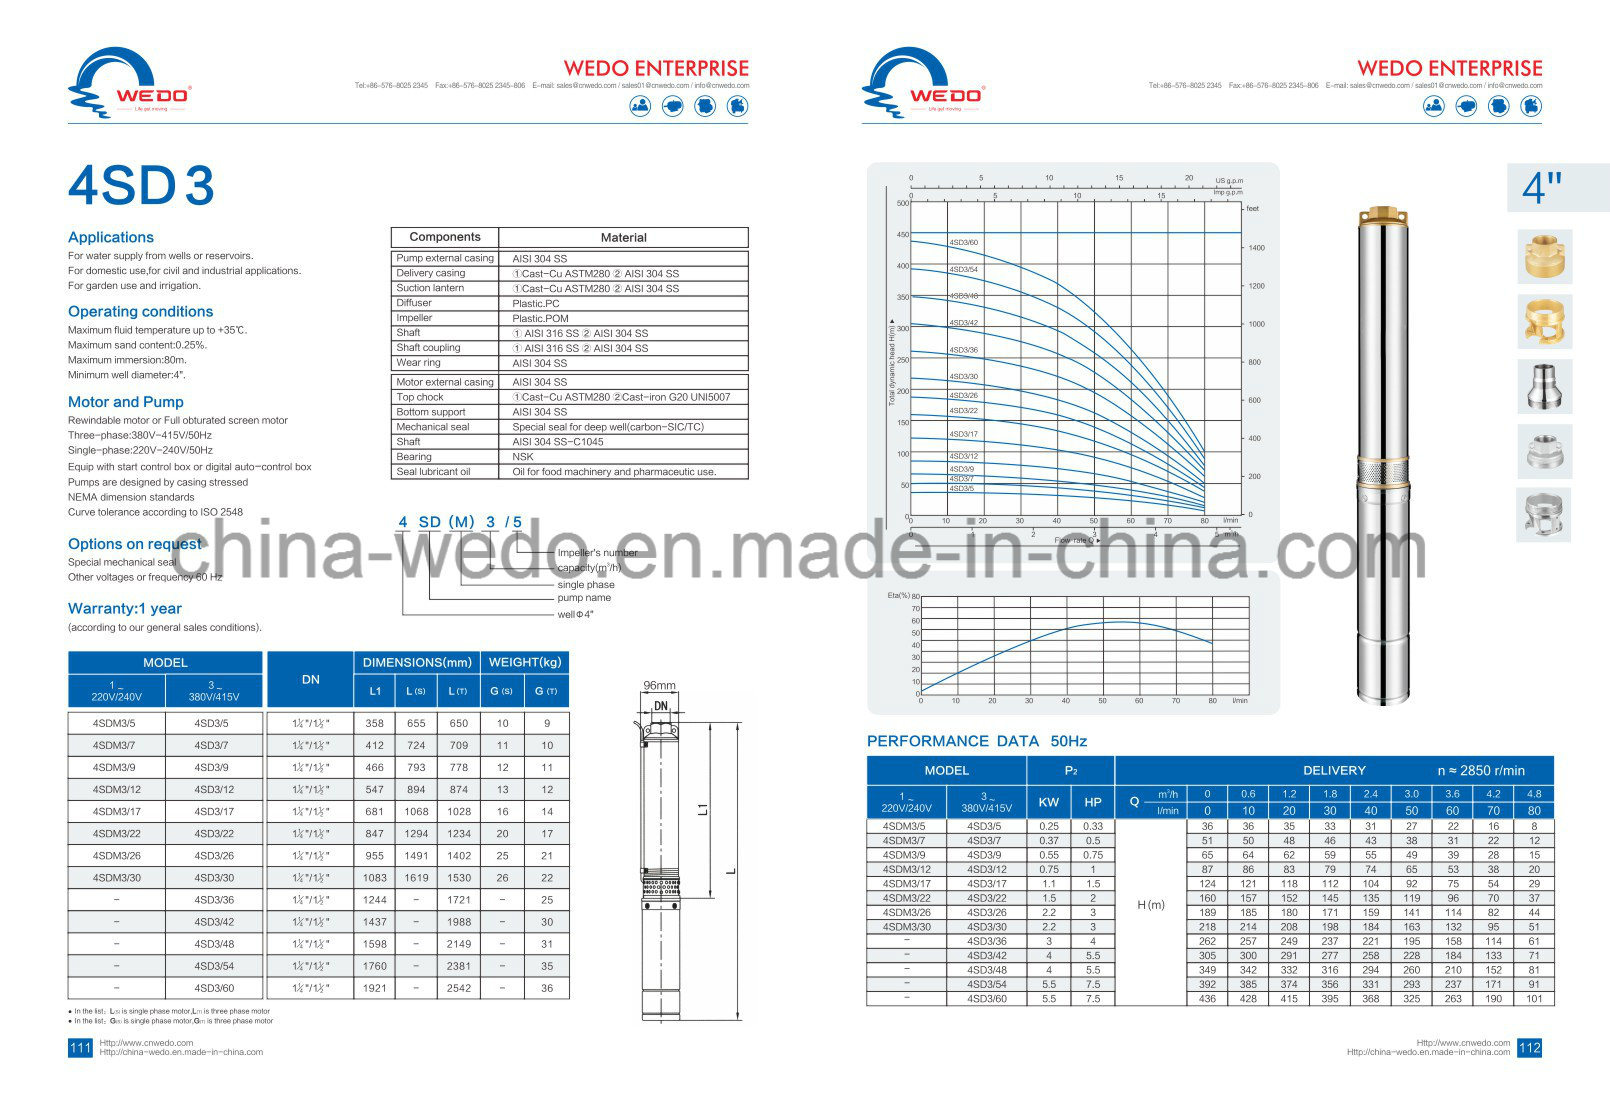 hight resolution of cs gs rohs certificated 2 100 copper wire stainless steel shaft brass cast iron outlet 3 wide voltage range design single phase and three phase